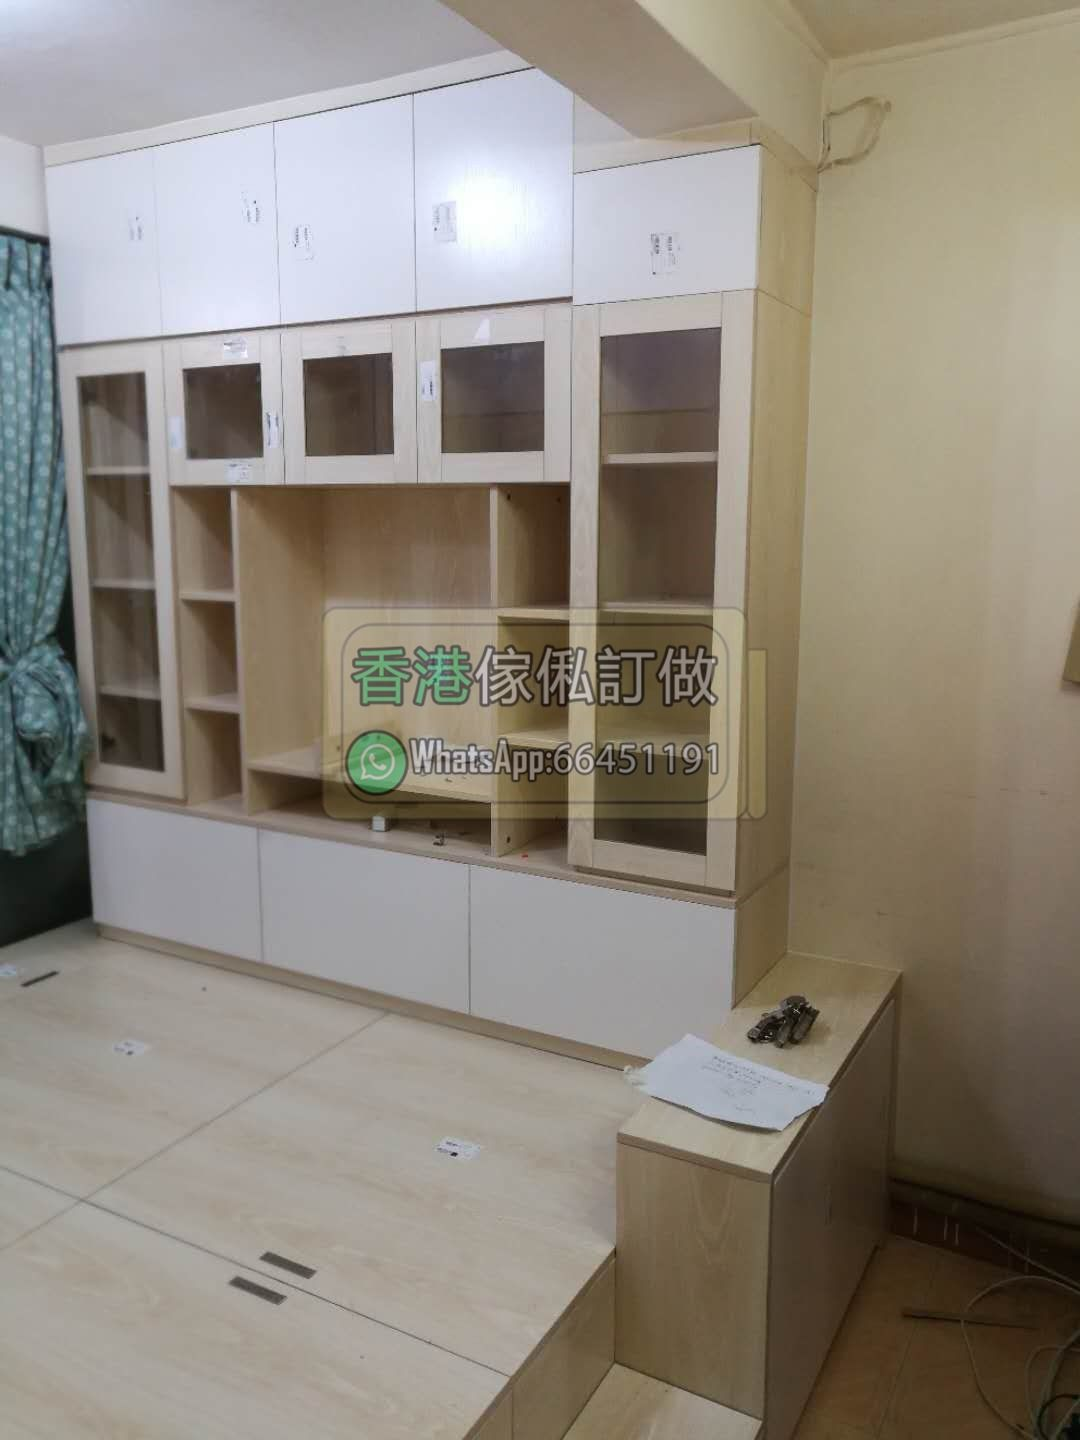 Hong Kong whole house furniture custom-made interior space design furniture custom bedroom custom-made kitchen custom public housing furniture private building children's room bedroom Hong Kong whole house furniture furniture custom-made TV cabinet storage cabinet cabinets up and down…